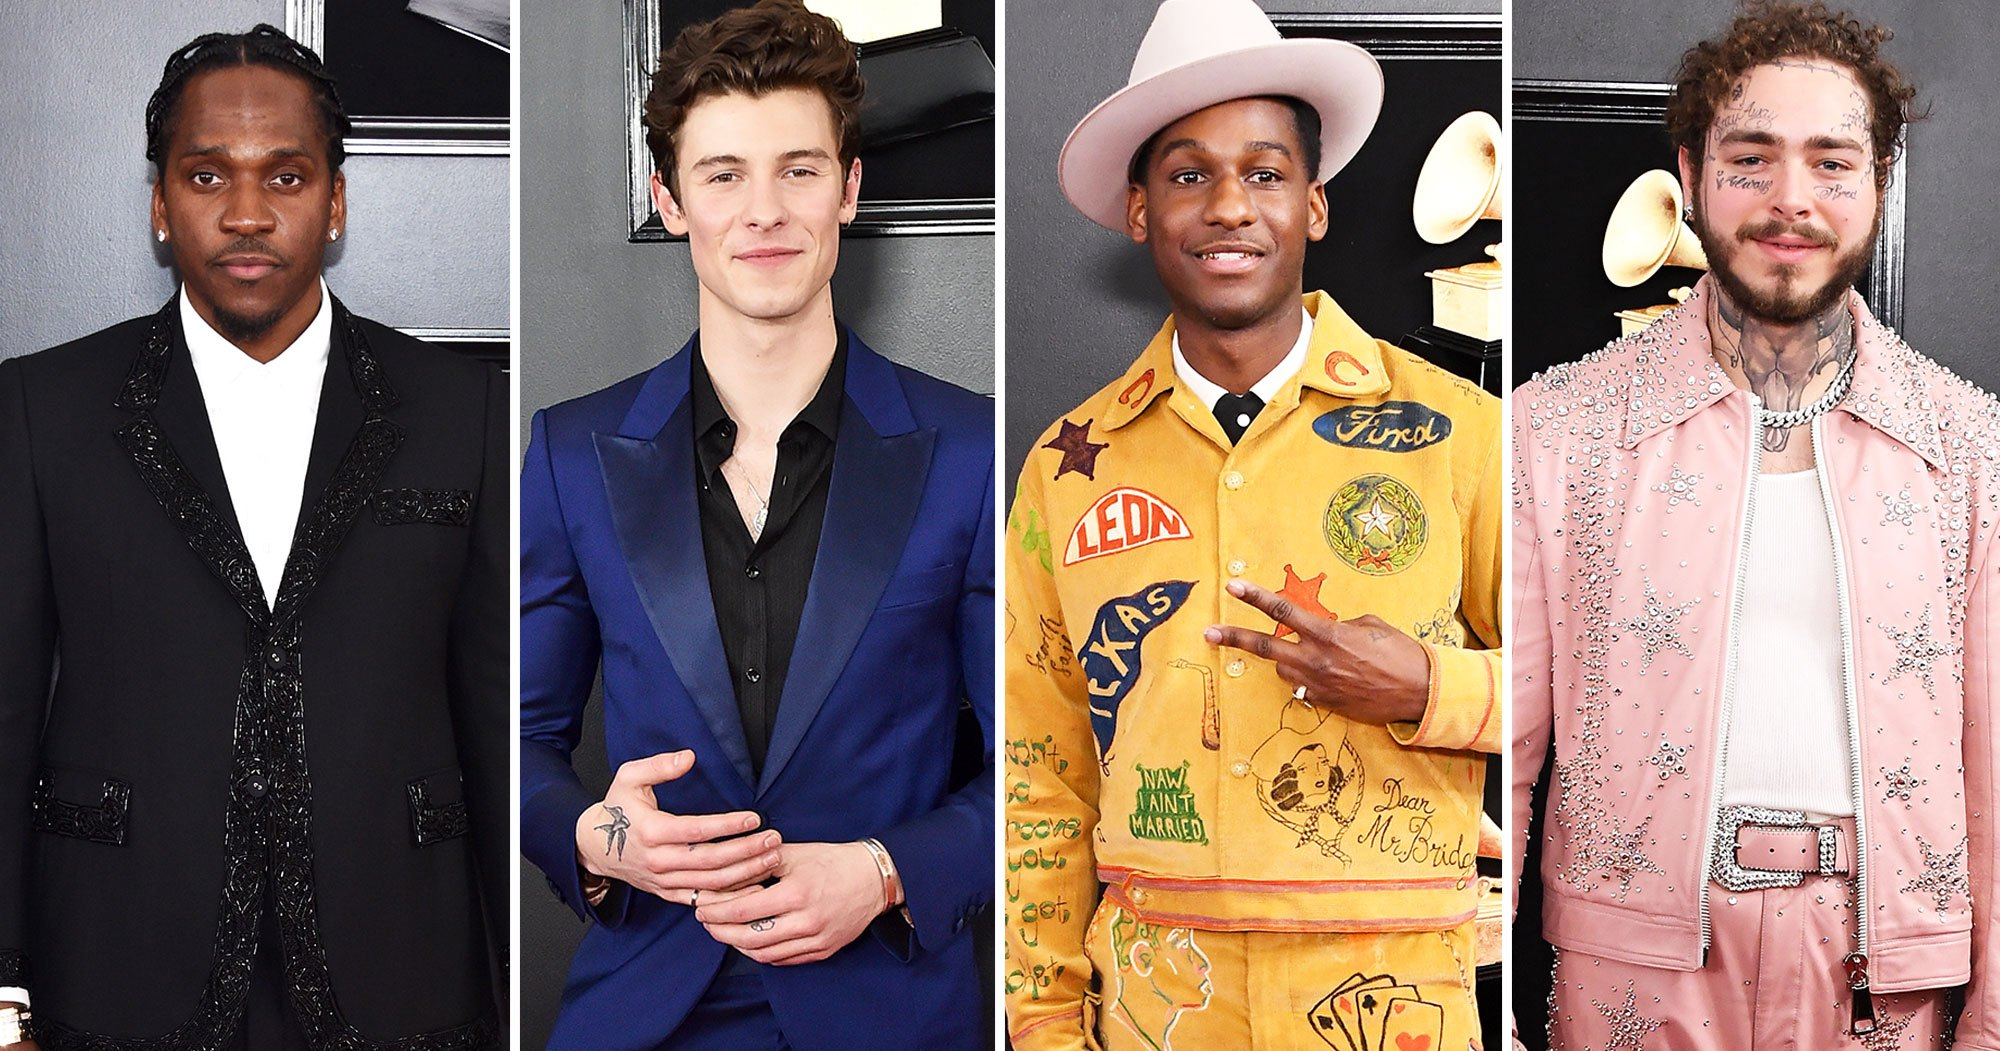 Grammys 2019 Red Carpet Fashion: Hot Guys in Suits and Tuxes